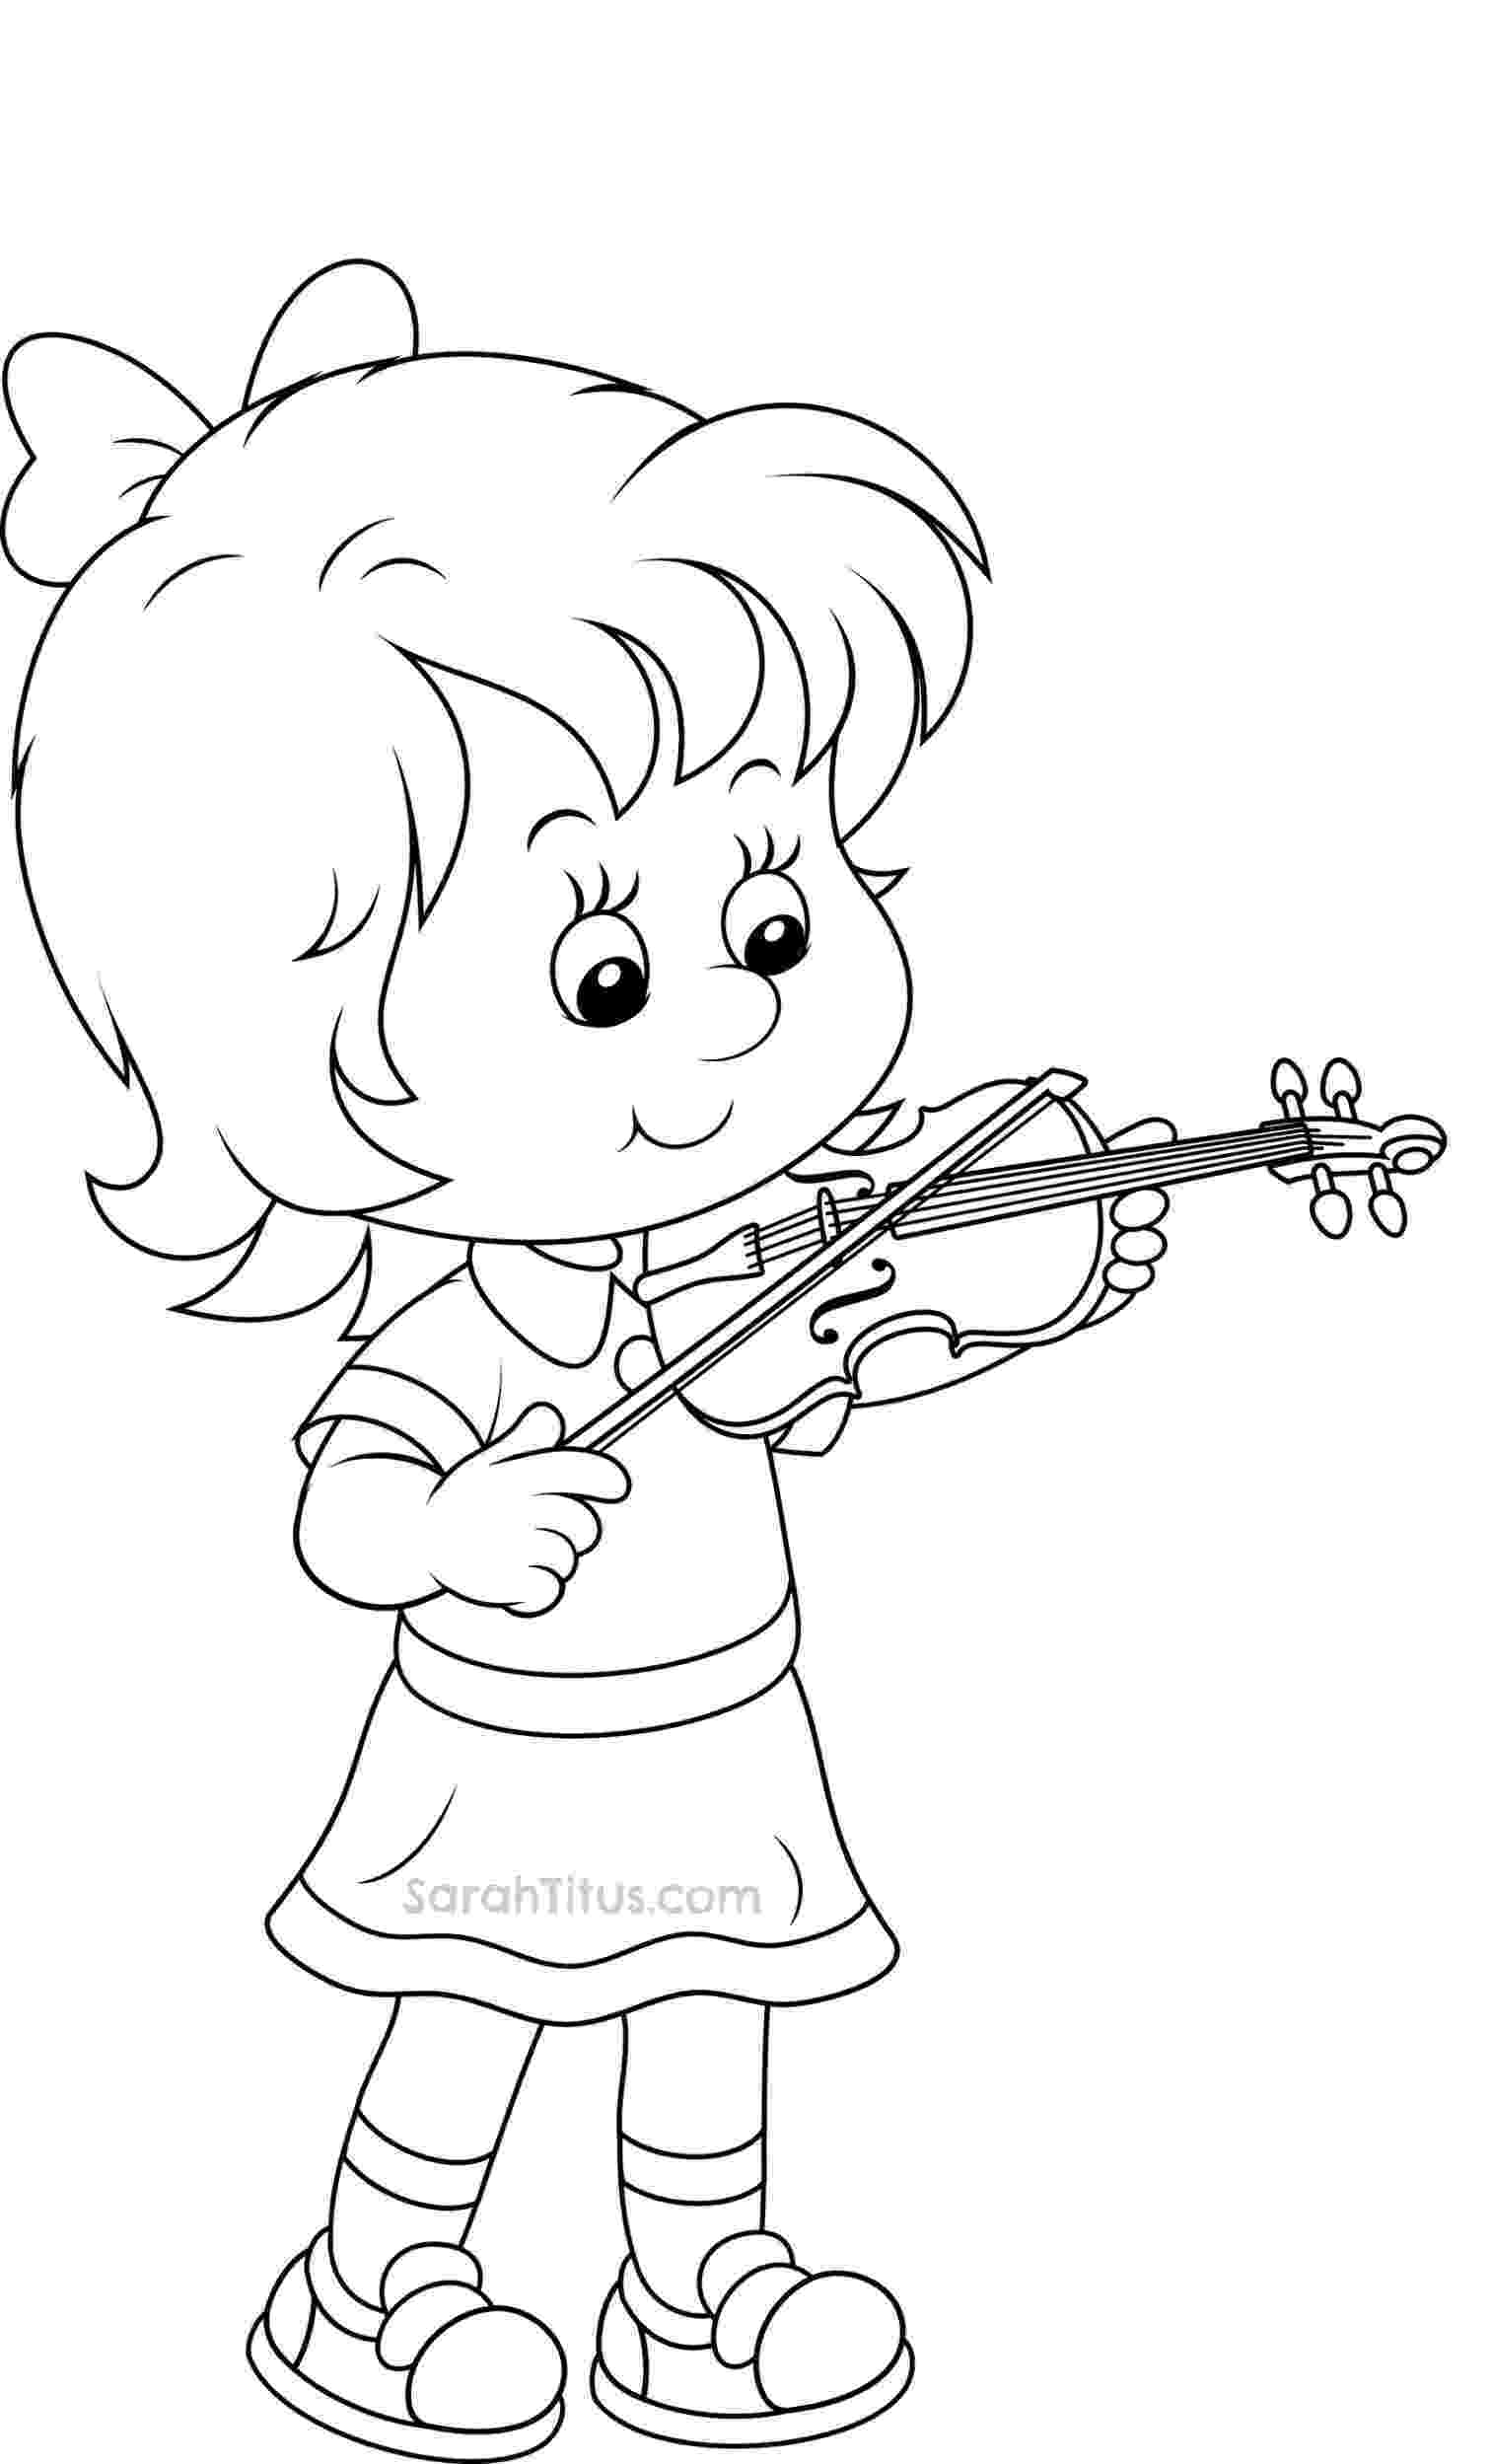 colouring pages for play school colouring pages abacus kids academy alberton day pages colouring for school play